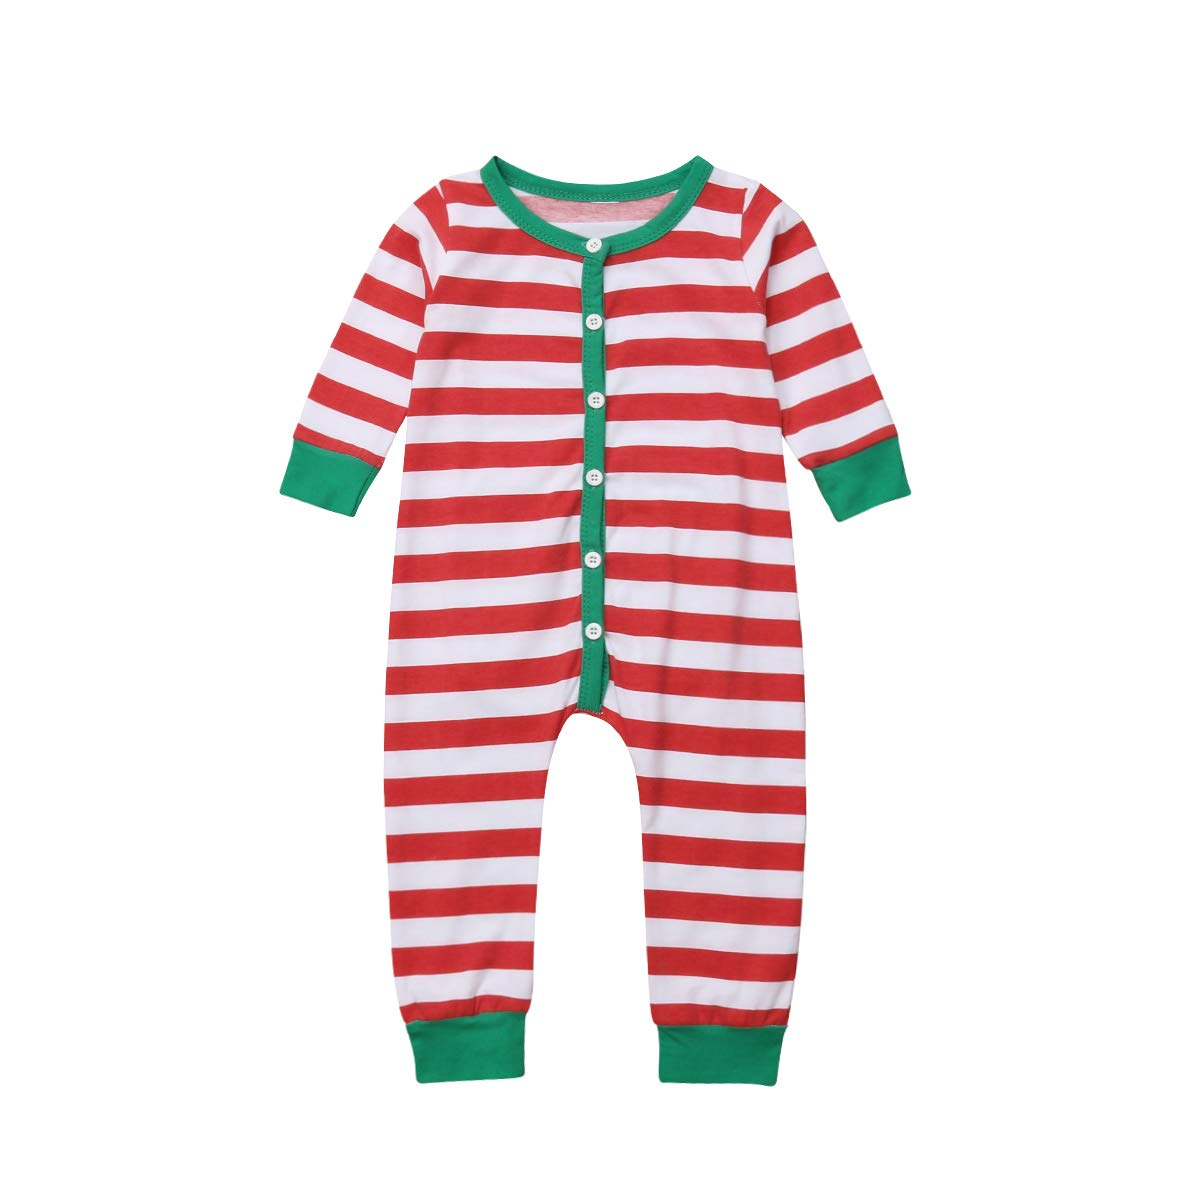 b10dc9b3a Amazon.com  Toddler Baby Girls Boys Christmas Romper Jumpsuit ...